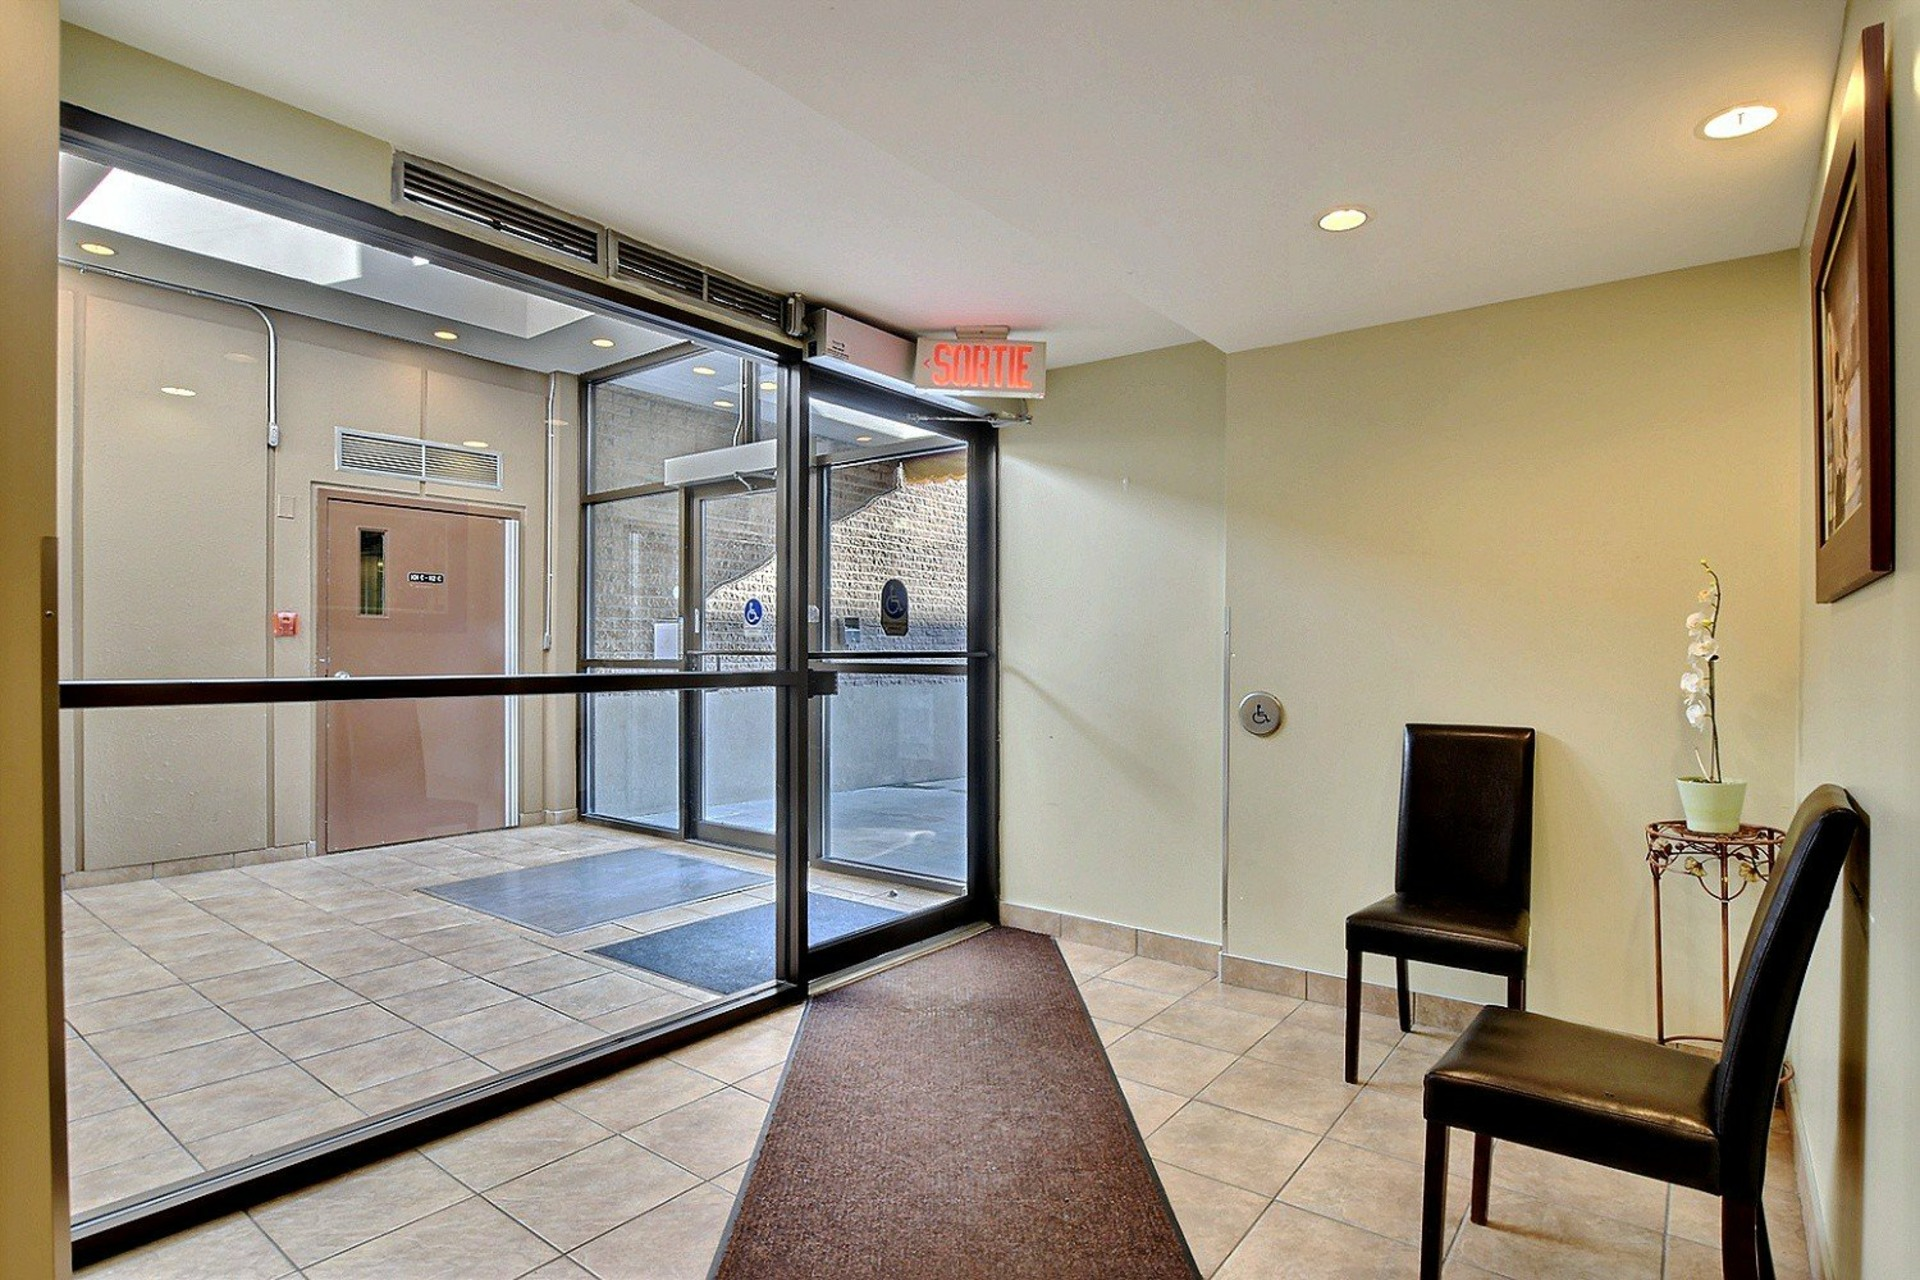 image 1 - Apartment For rent Brossard - 7 rooms